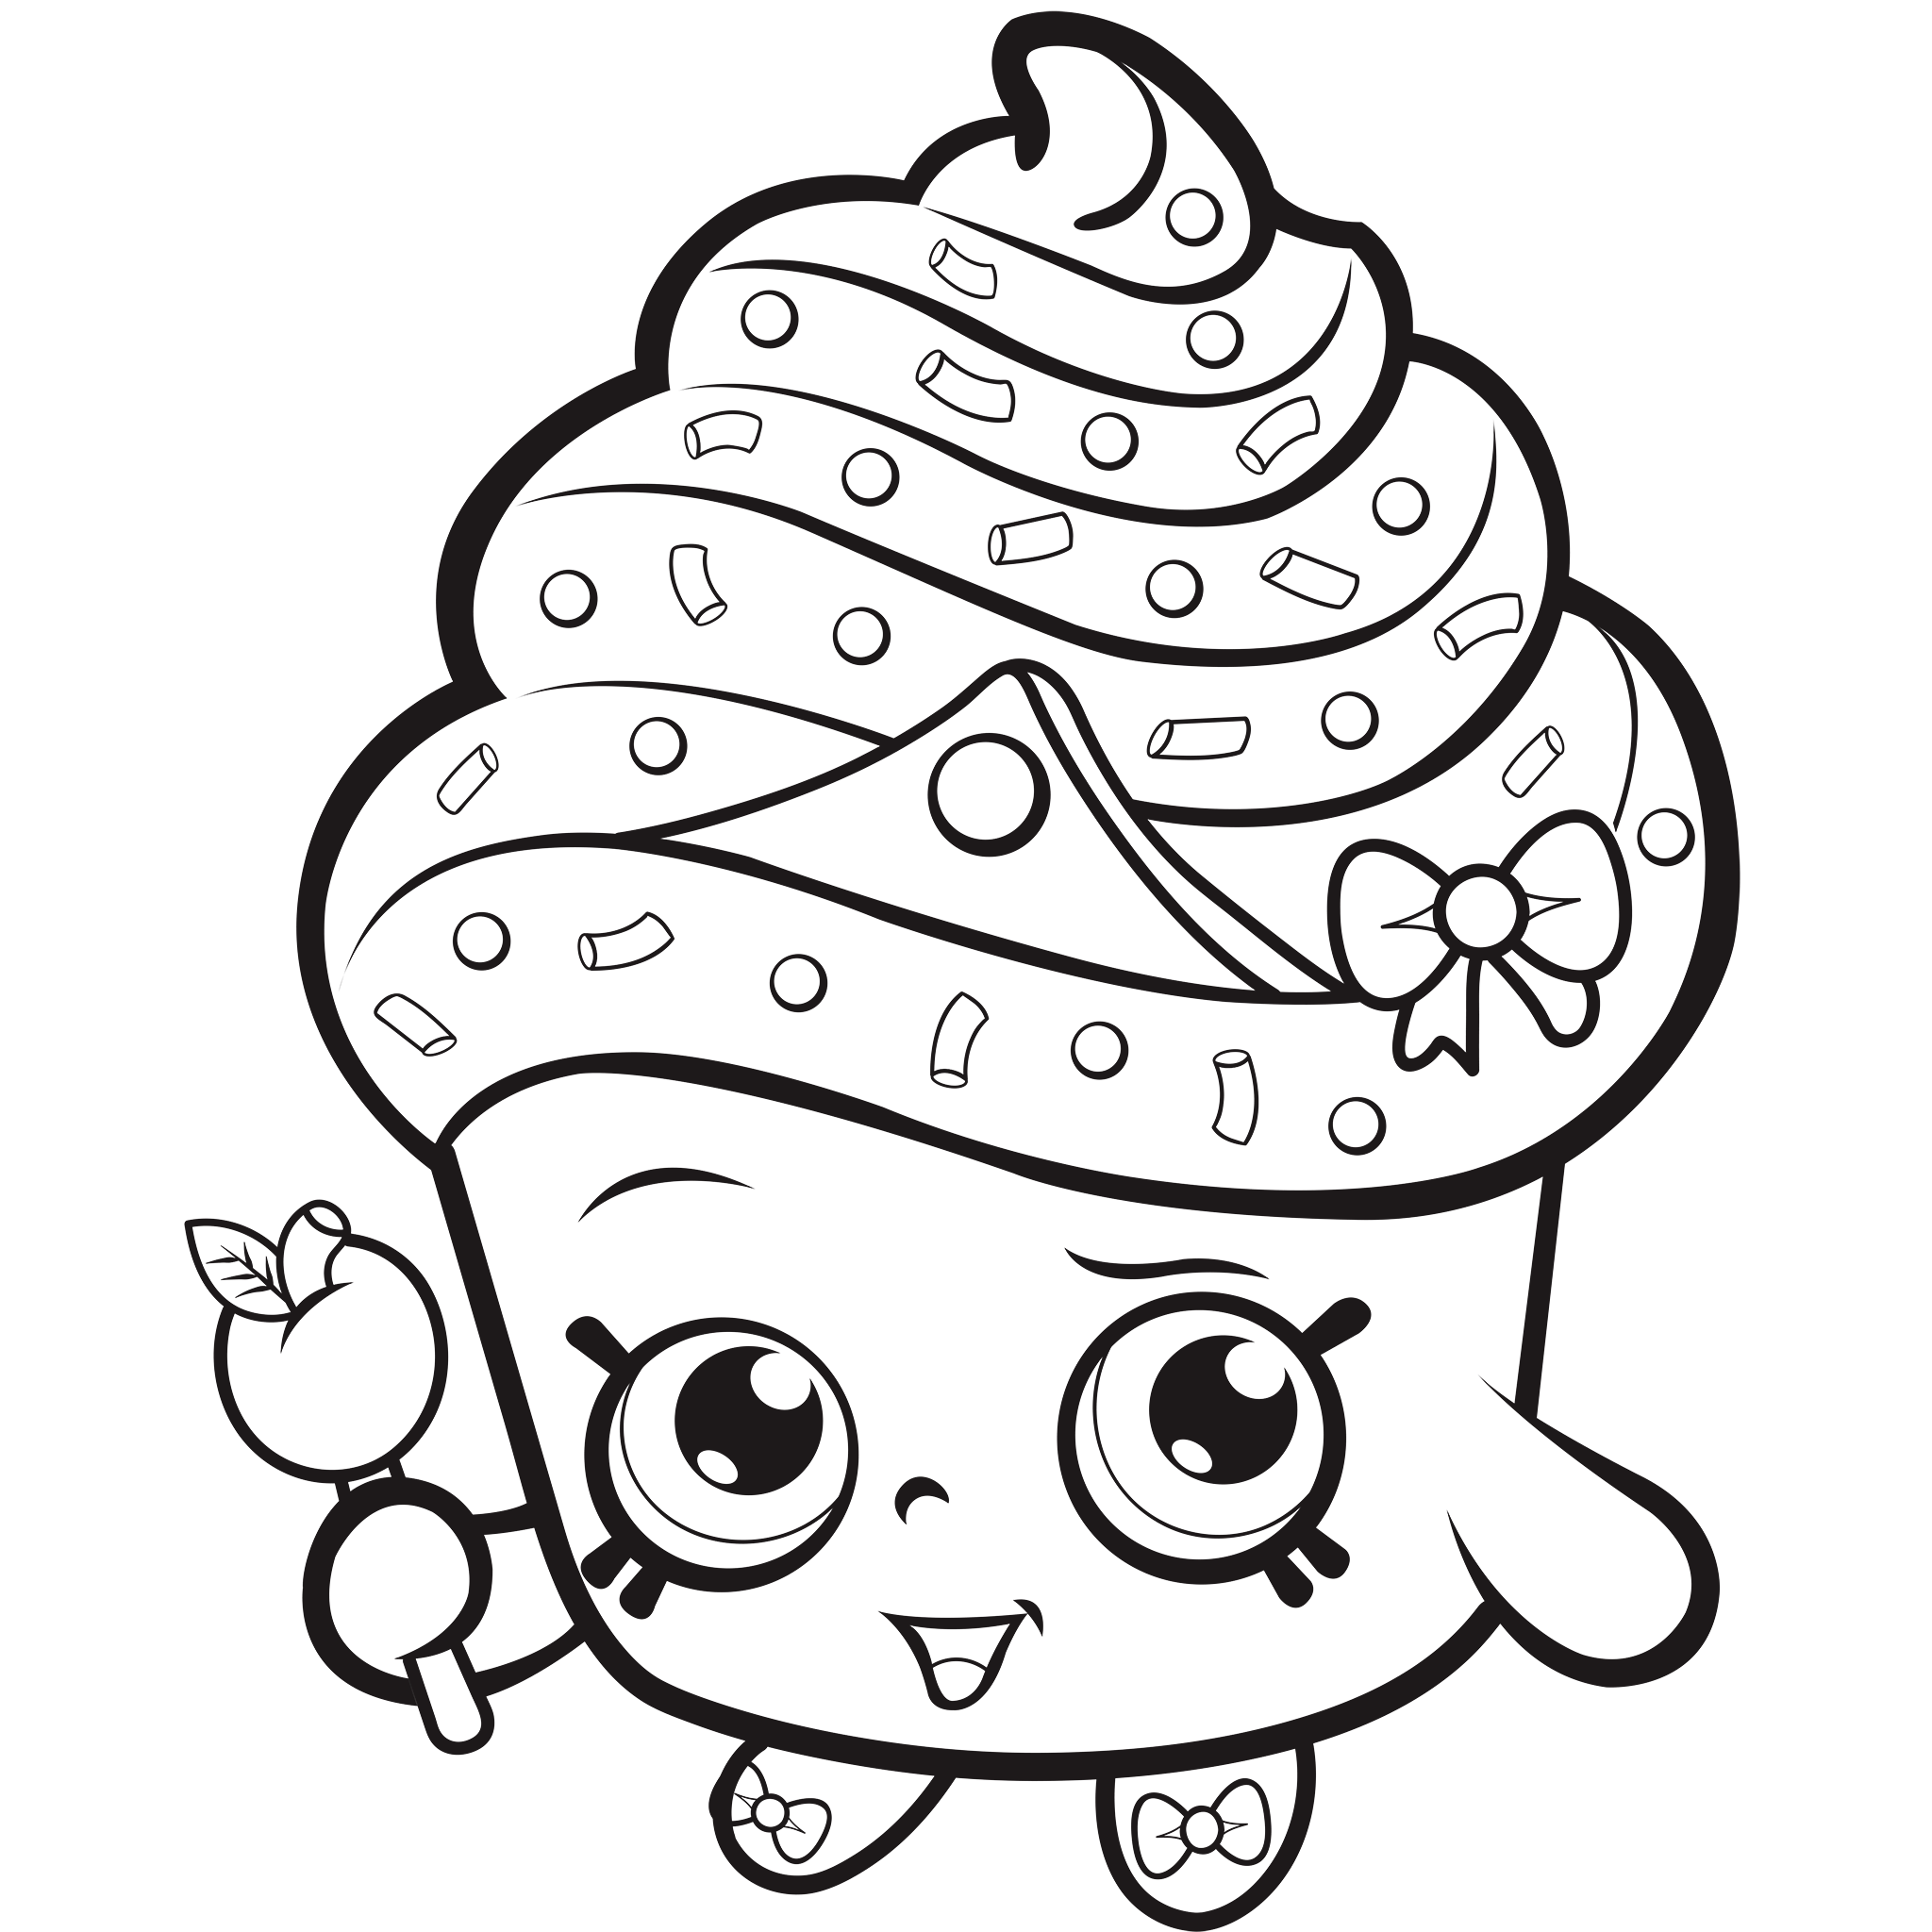 Shopkins coloring pages best coloring pages for kids for Coloring pages food